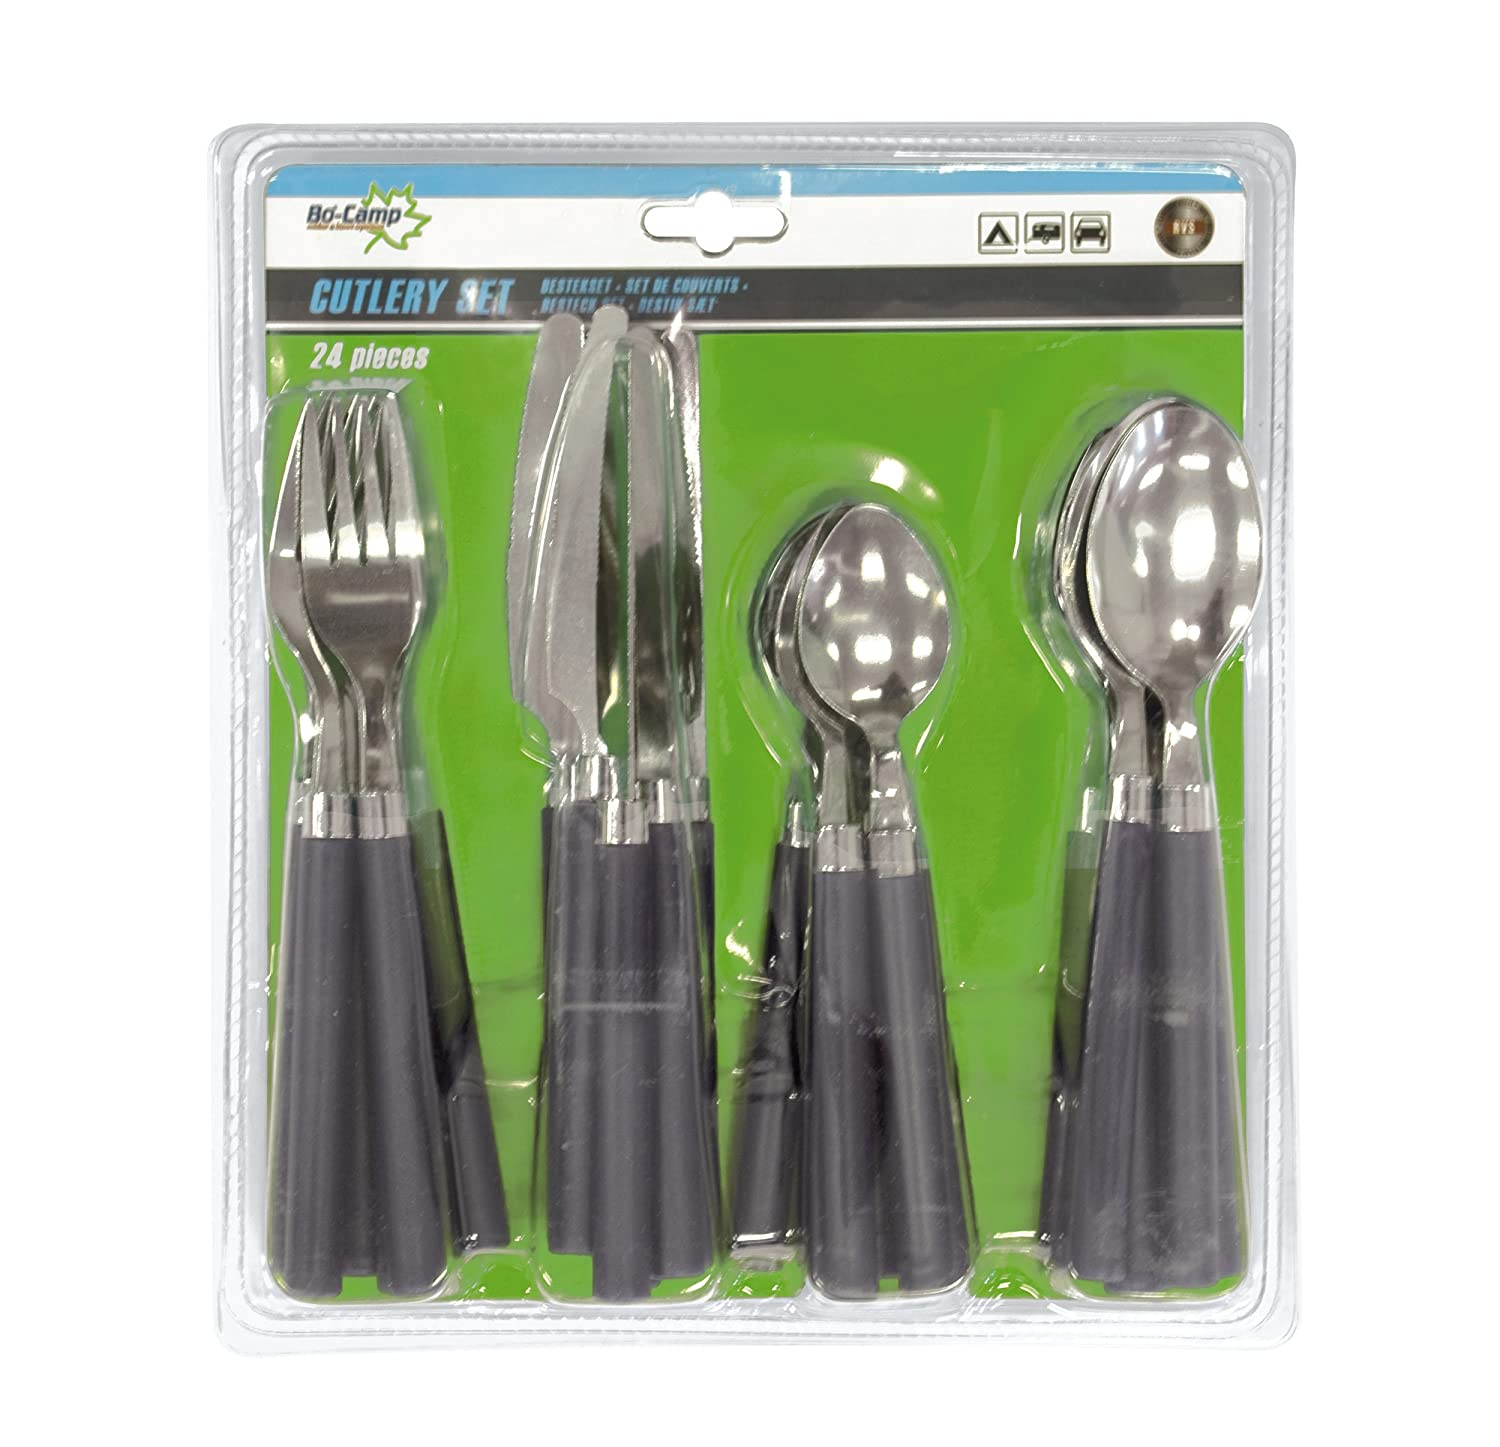 Bo-Camp - Cutlery in blister pack 24 piece 6 pers. 6102104